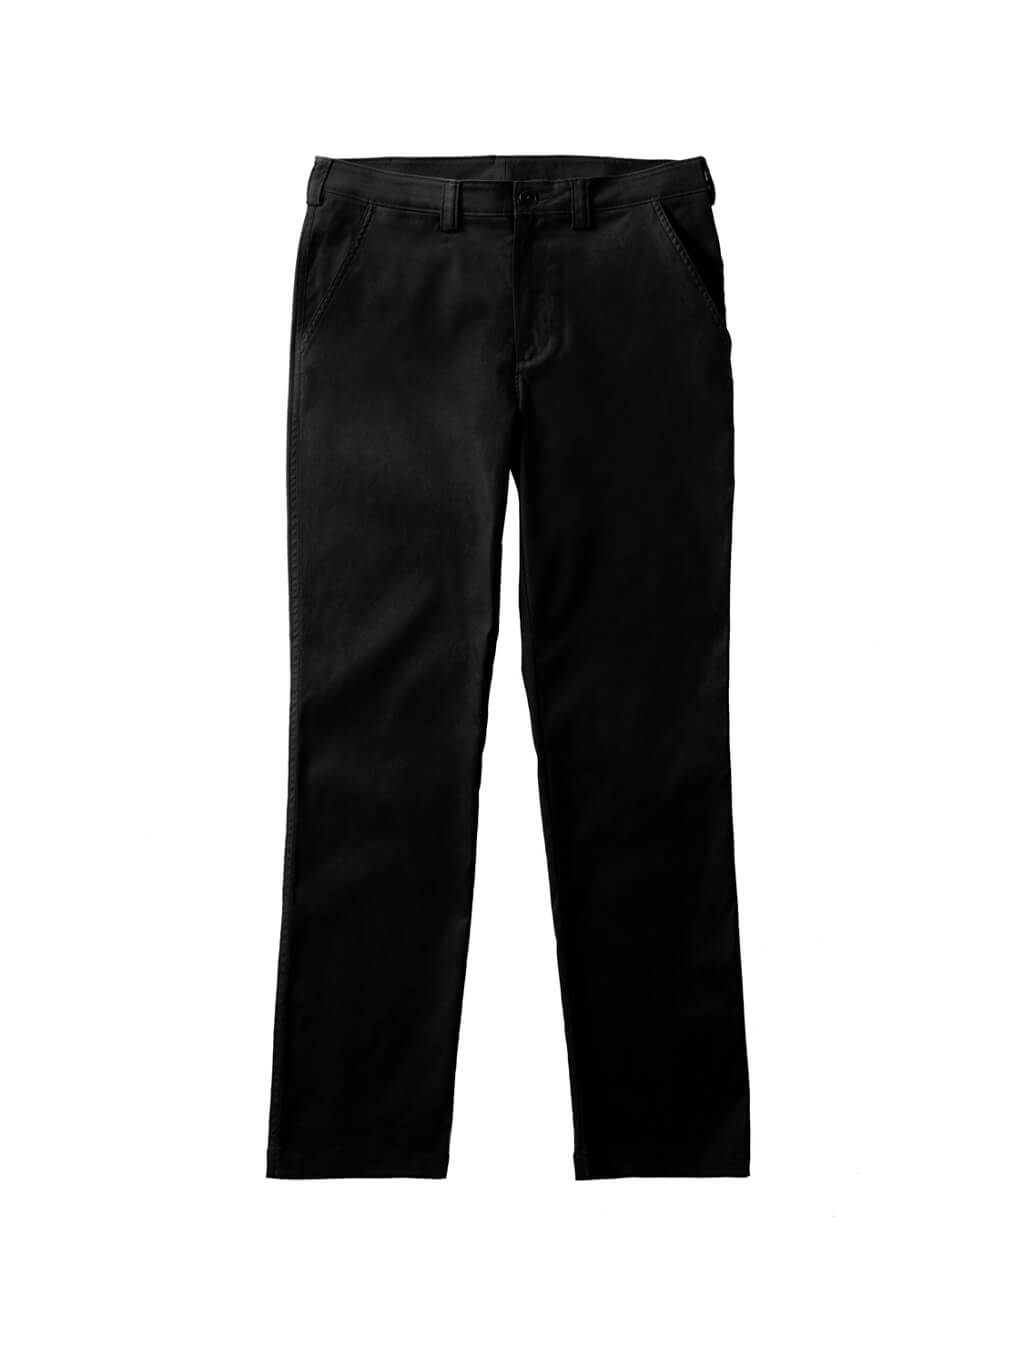 Aether men's cycling pants